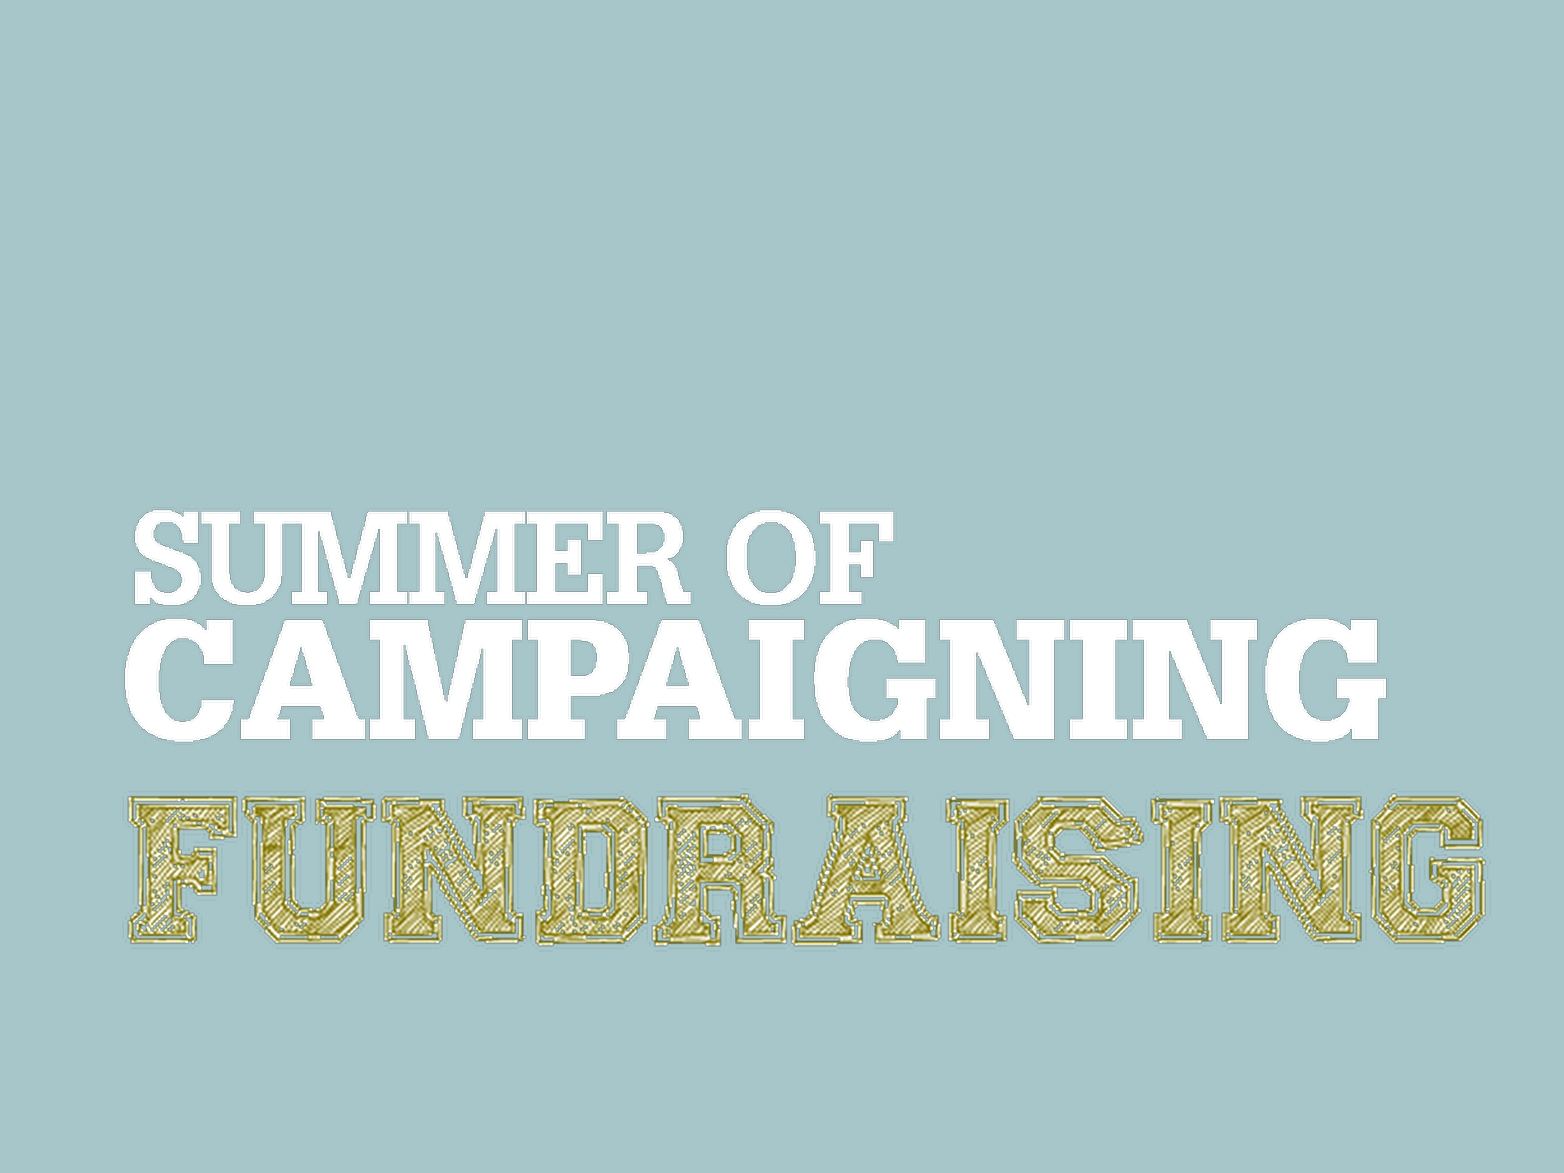 Fundraising: Thinking about the funds you need